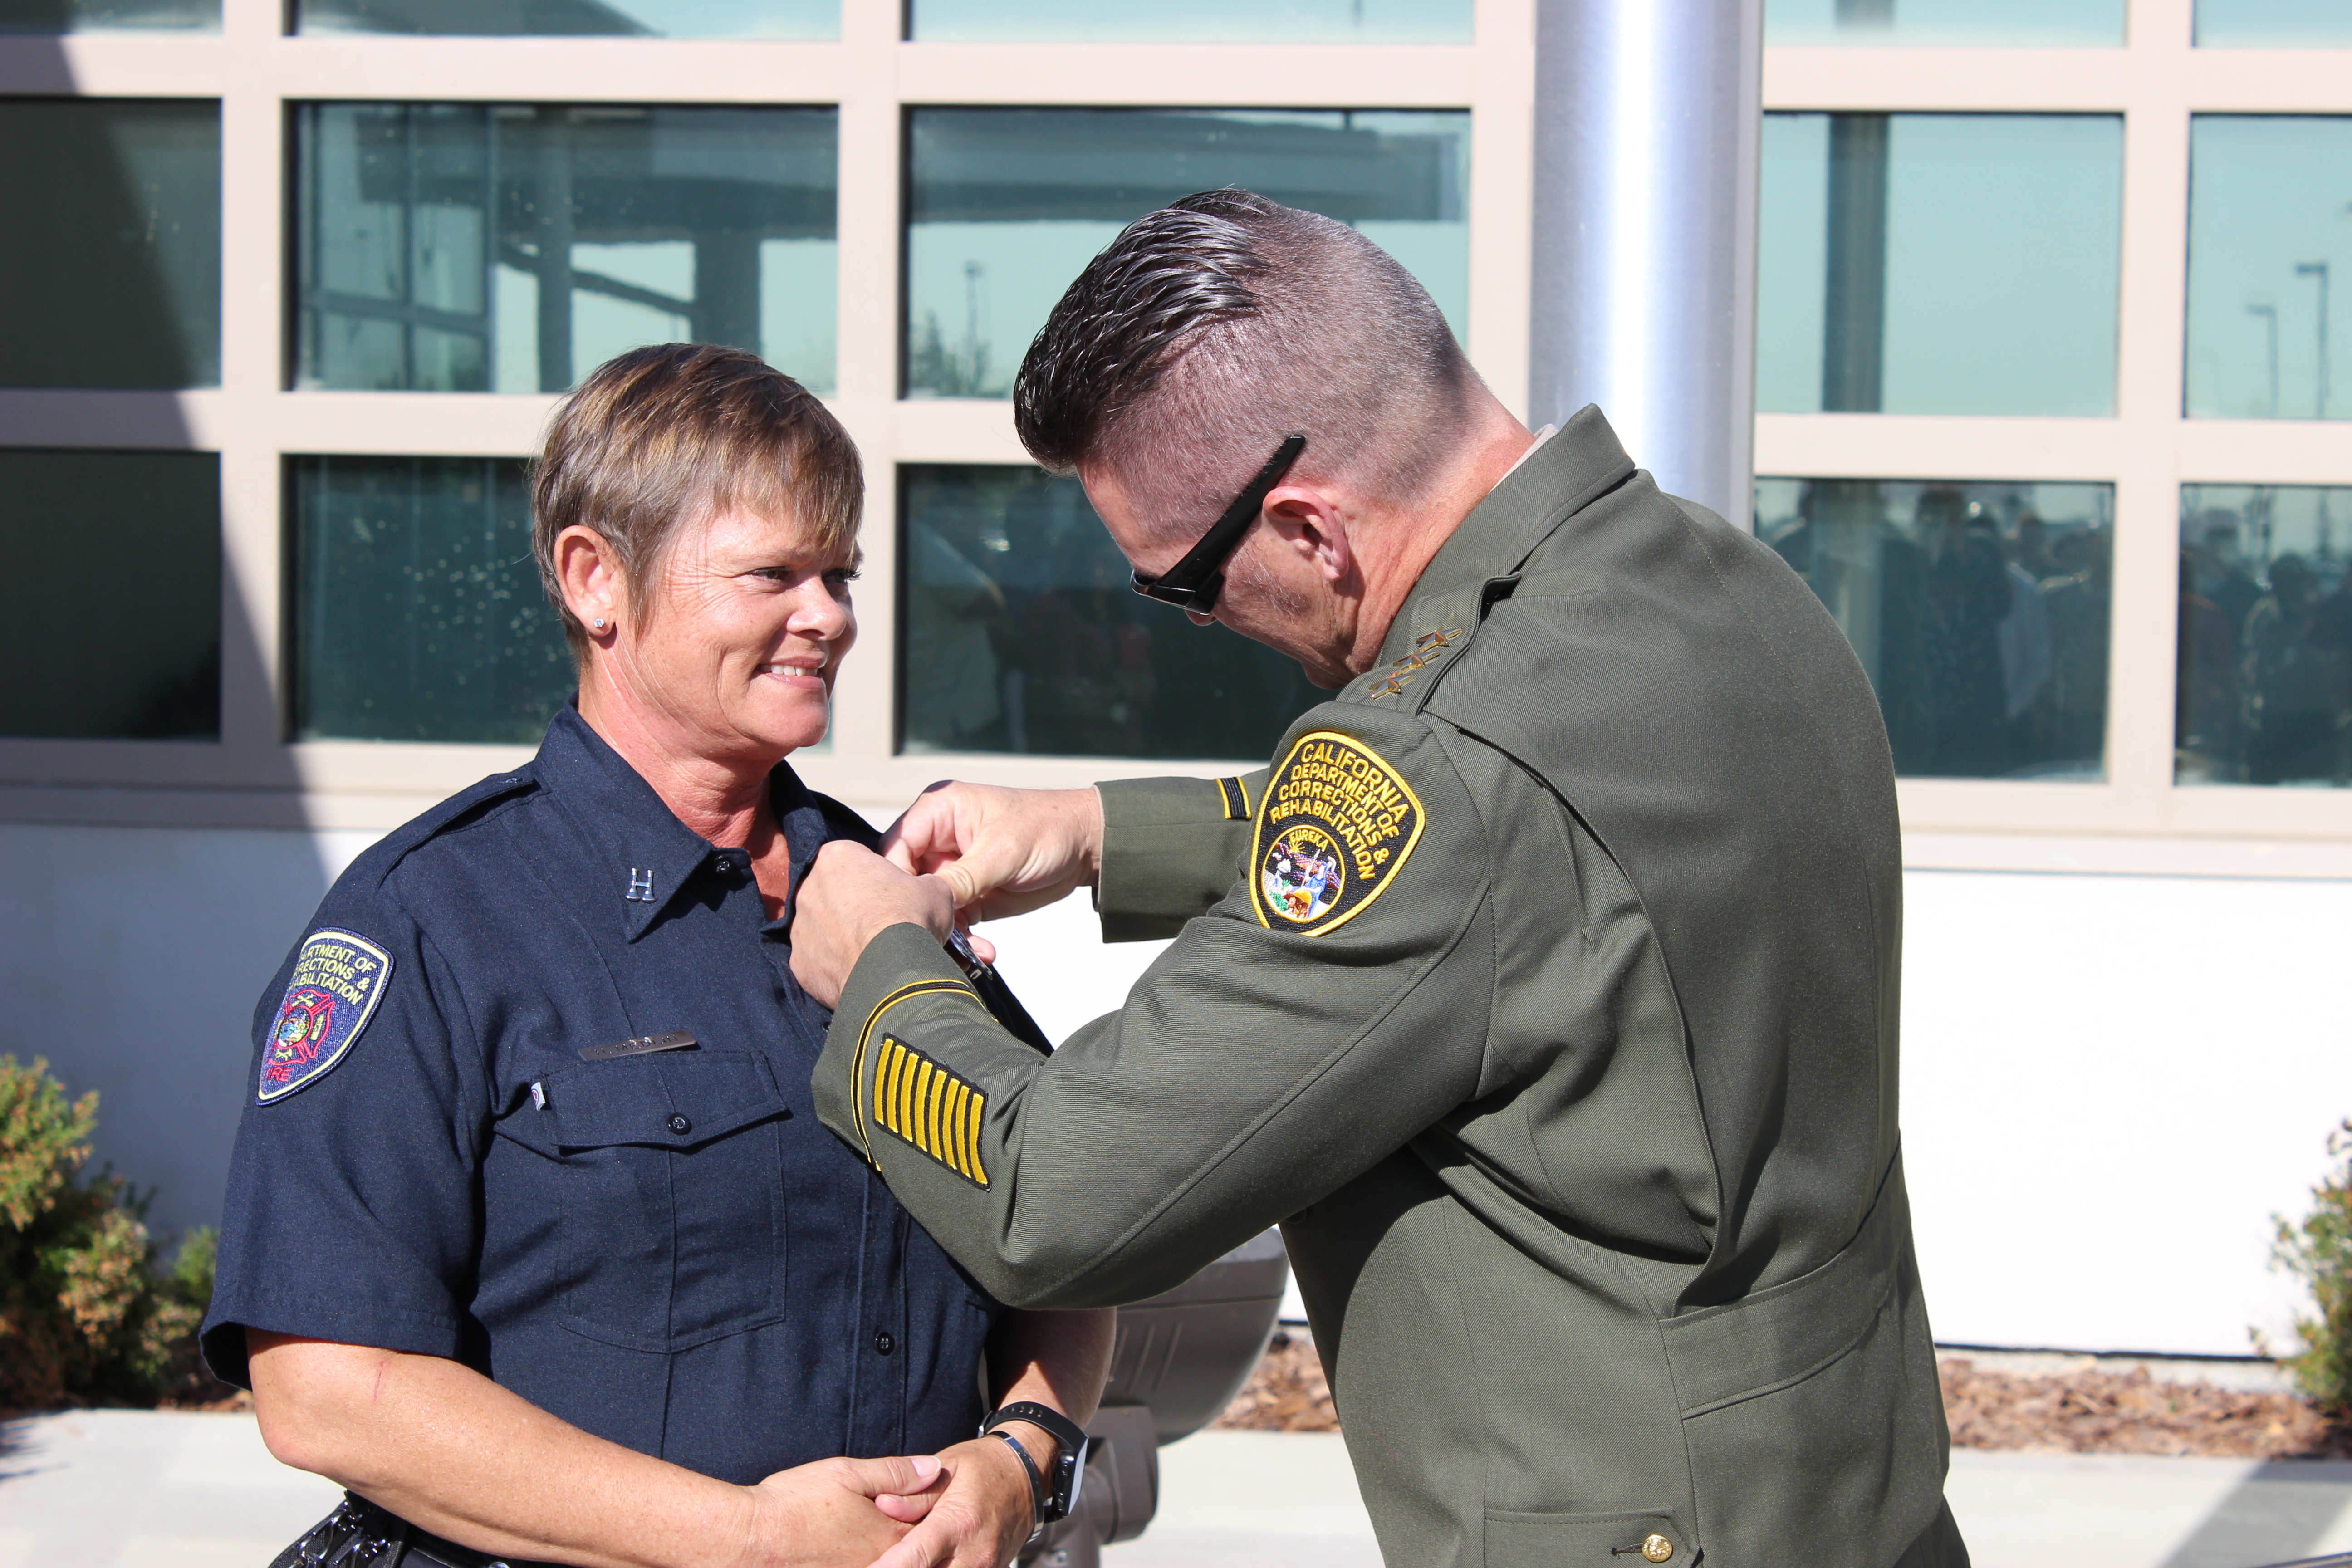 Female in blue uniform is pinned by a man in a correctional uniform.